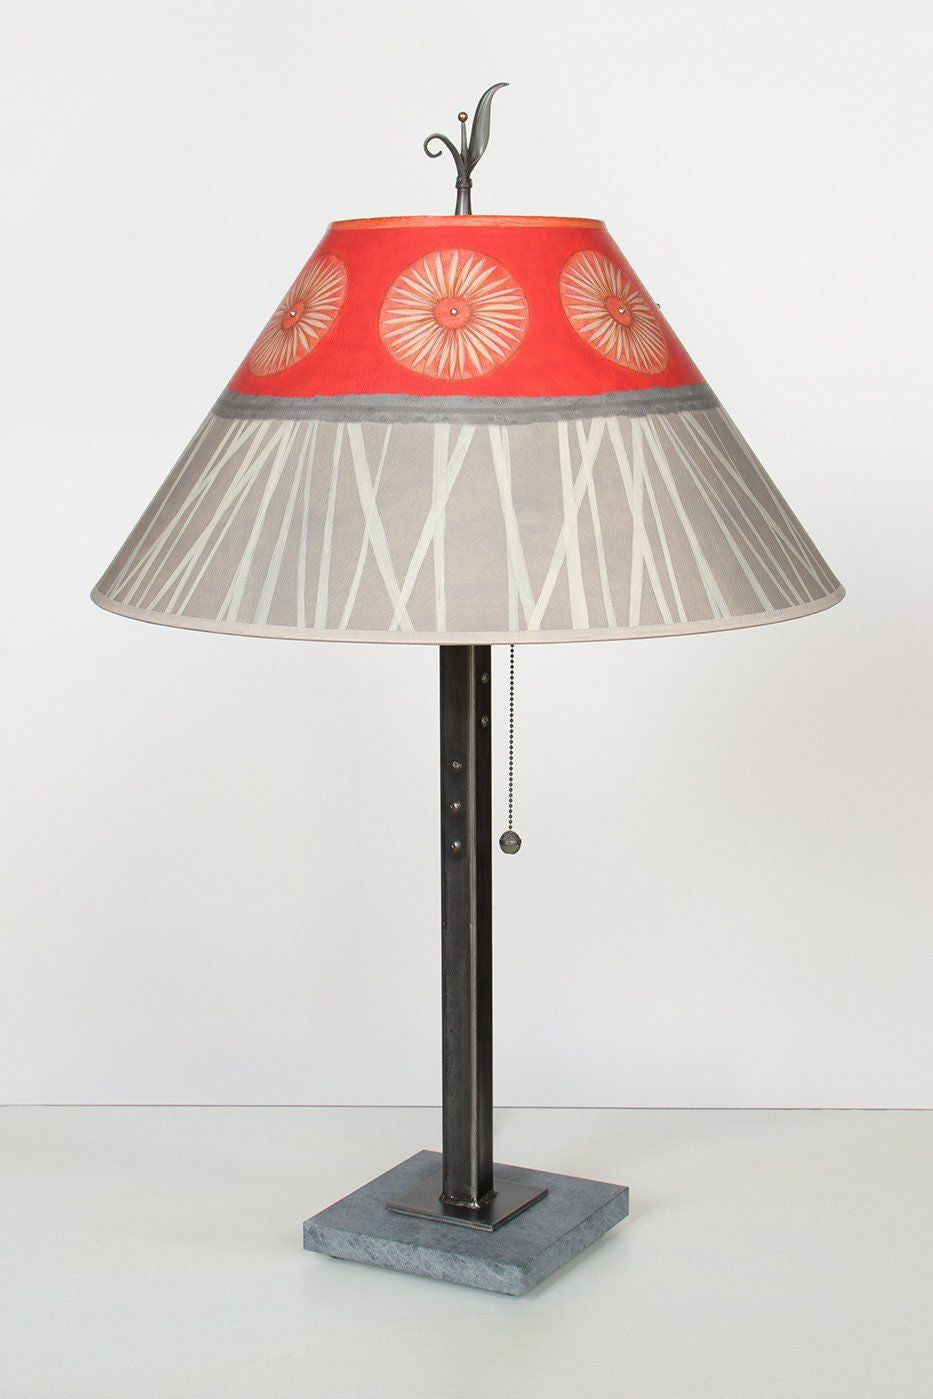 Steel Table Lamp on Italian Marble with Large Conical Shade in Tang